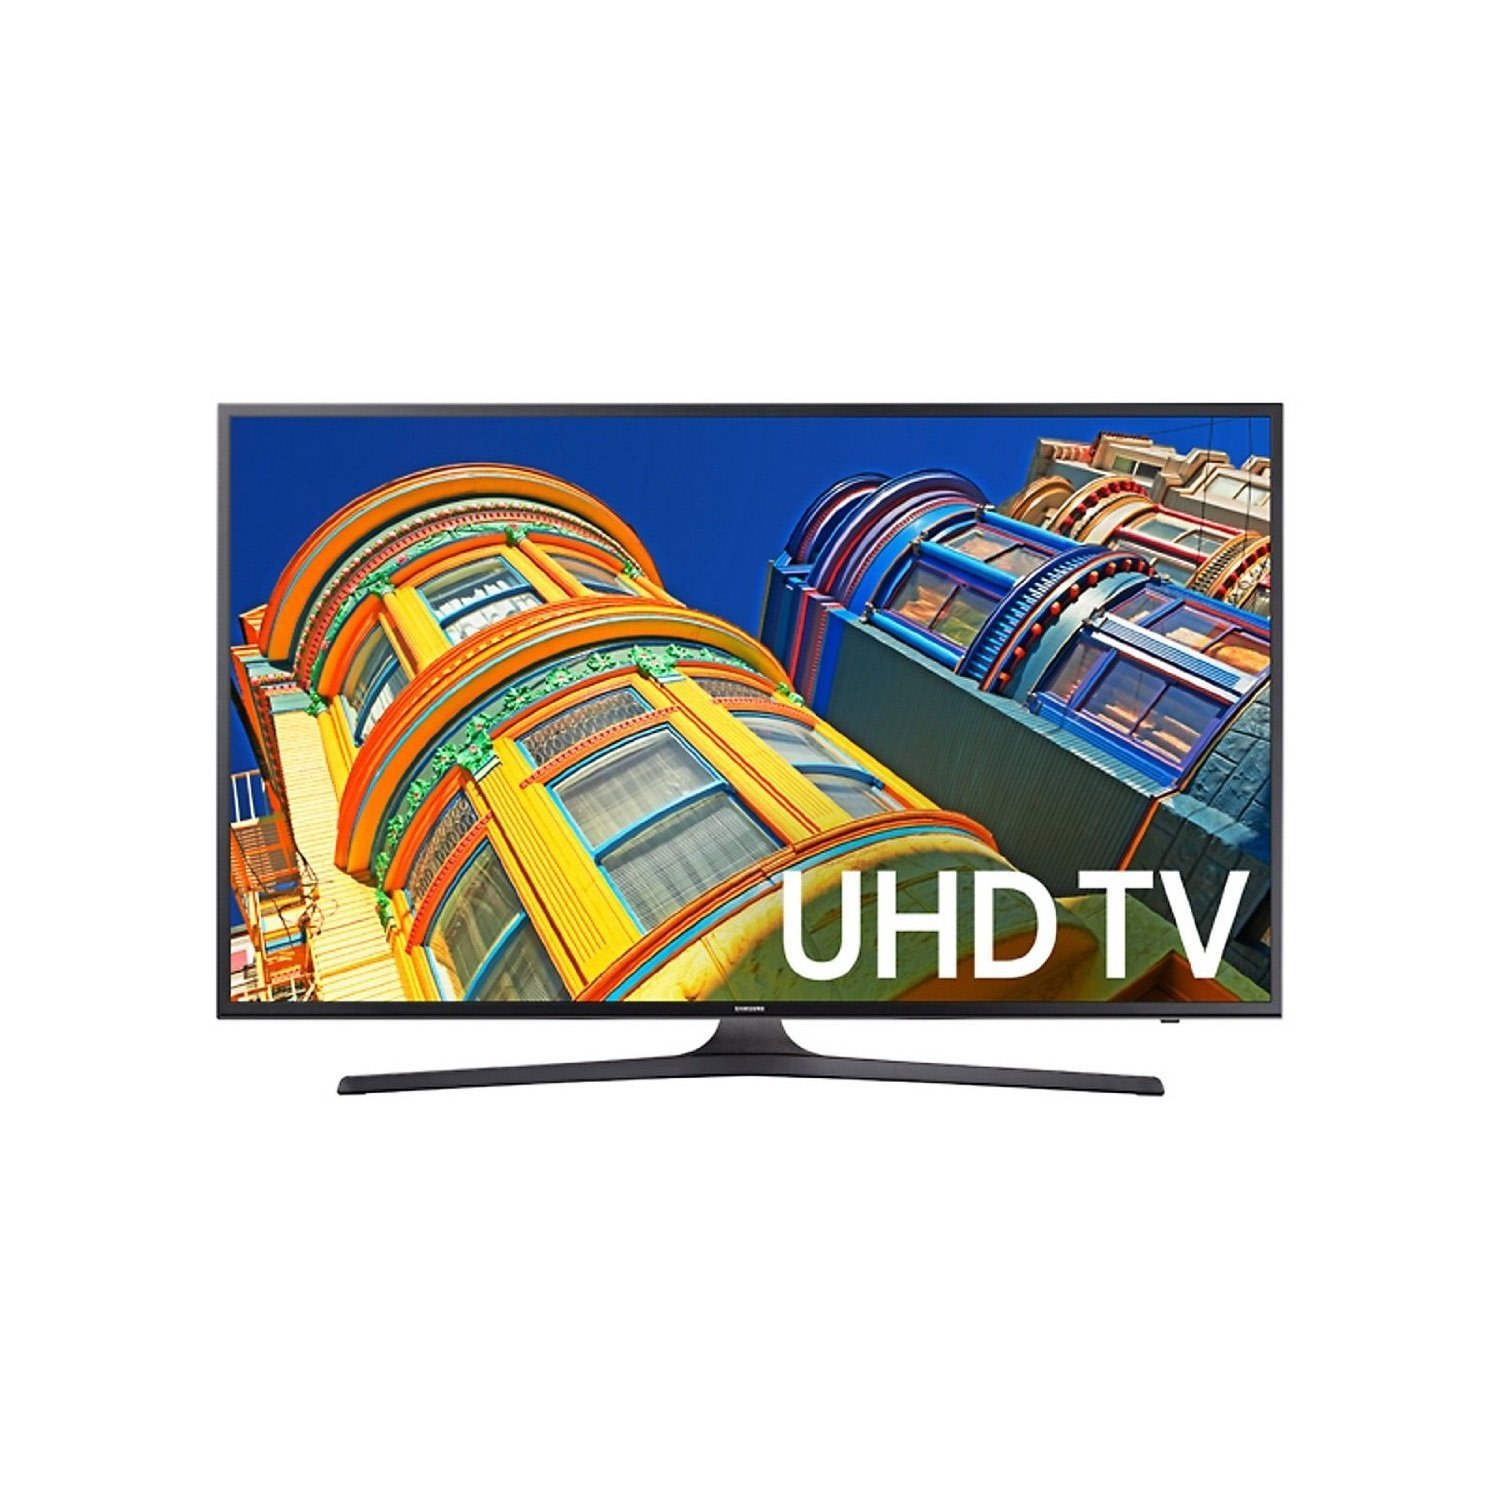 An image of Samsung UN65KU6290FXZA 65-Inch HDR 4K LED Smart TV with Motion Rate 120